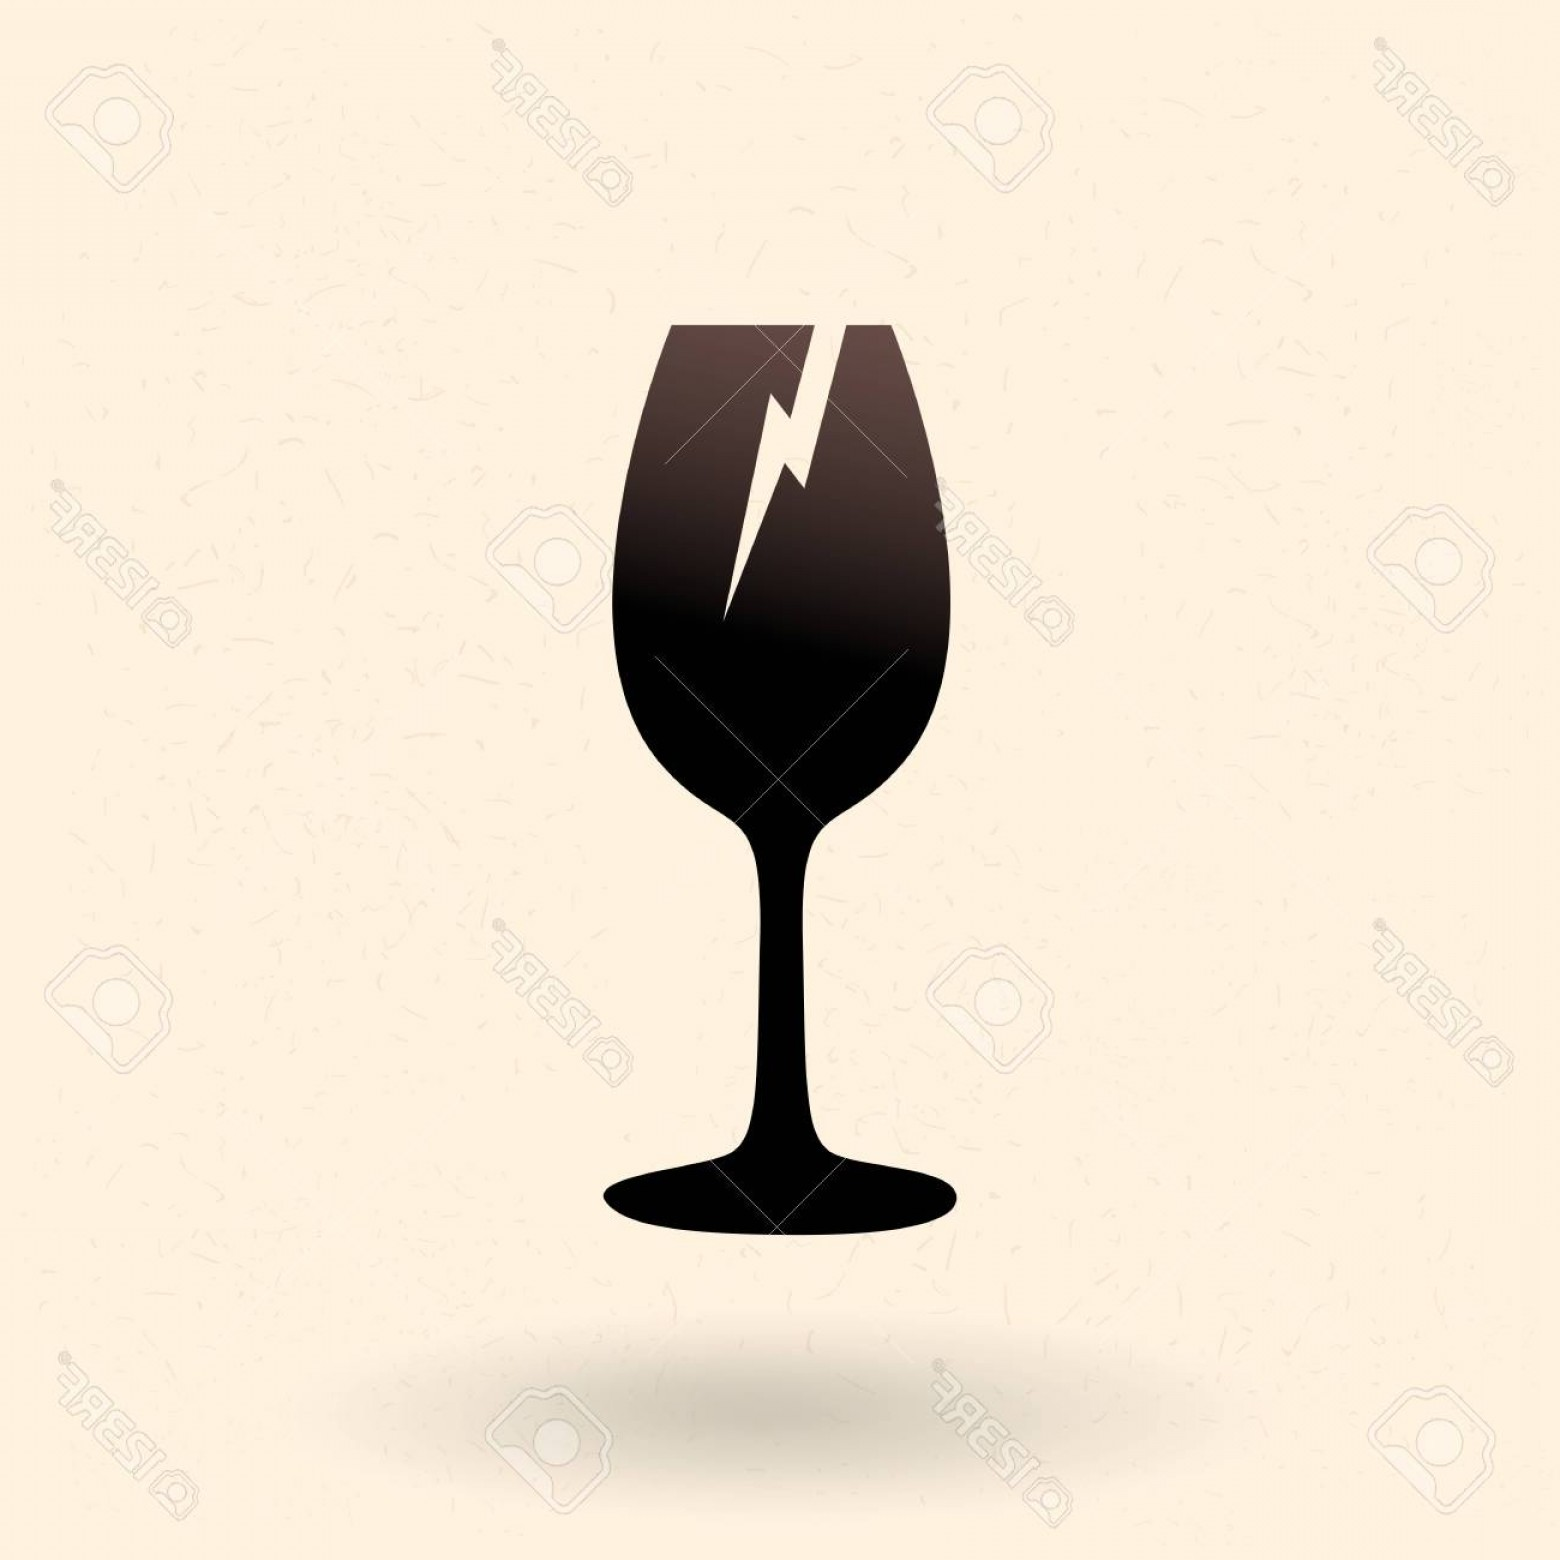 Single Wine Glass Silhouette Vector: Photostock Vector Vector Black Silhouette Icon Broken Wine Glass Sign For Fragile Package